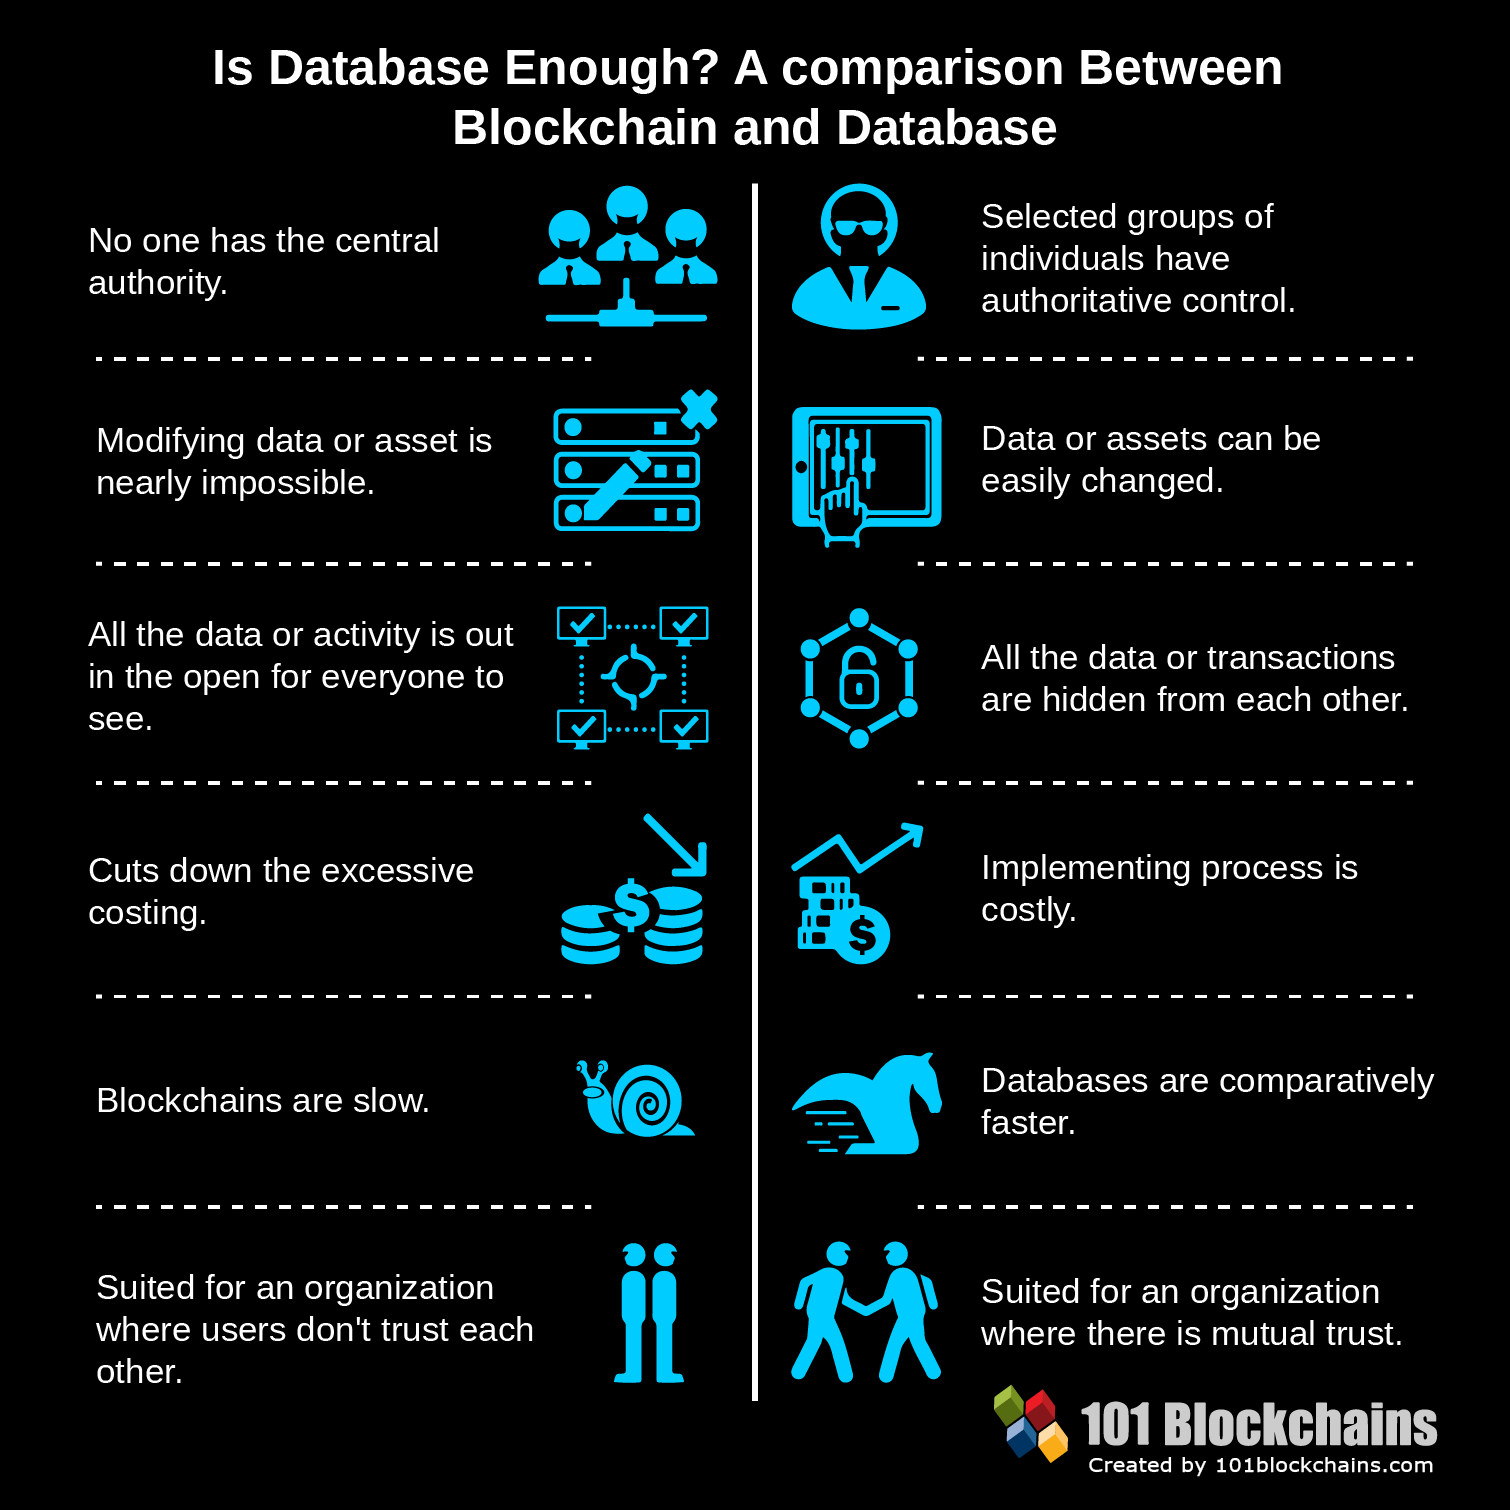 Comparison Between Blockchain and Database